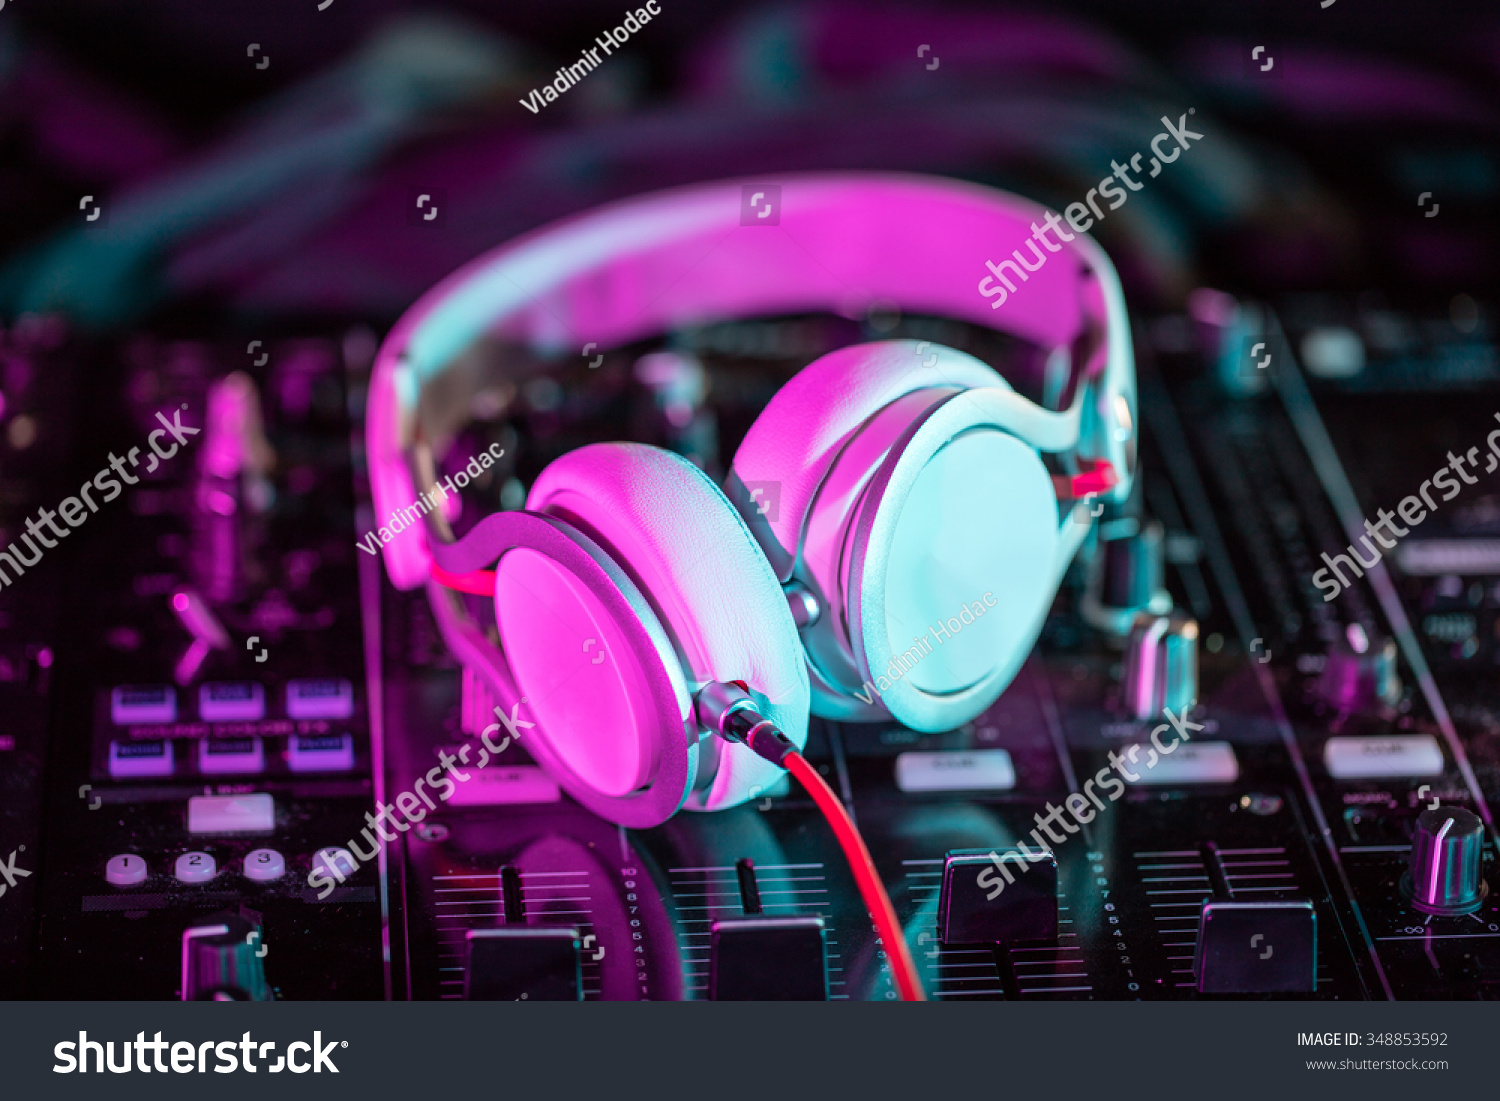 Dj sound equipment nightclubs music festivals stock photo for Famous house music